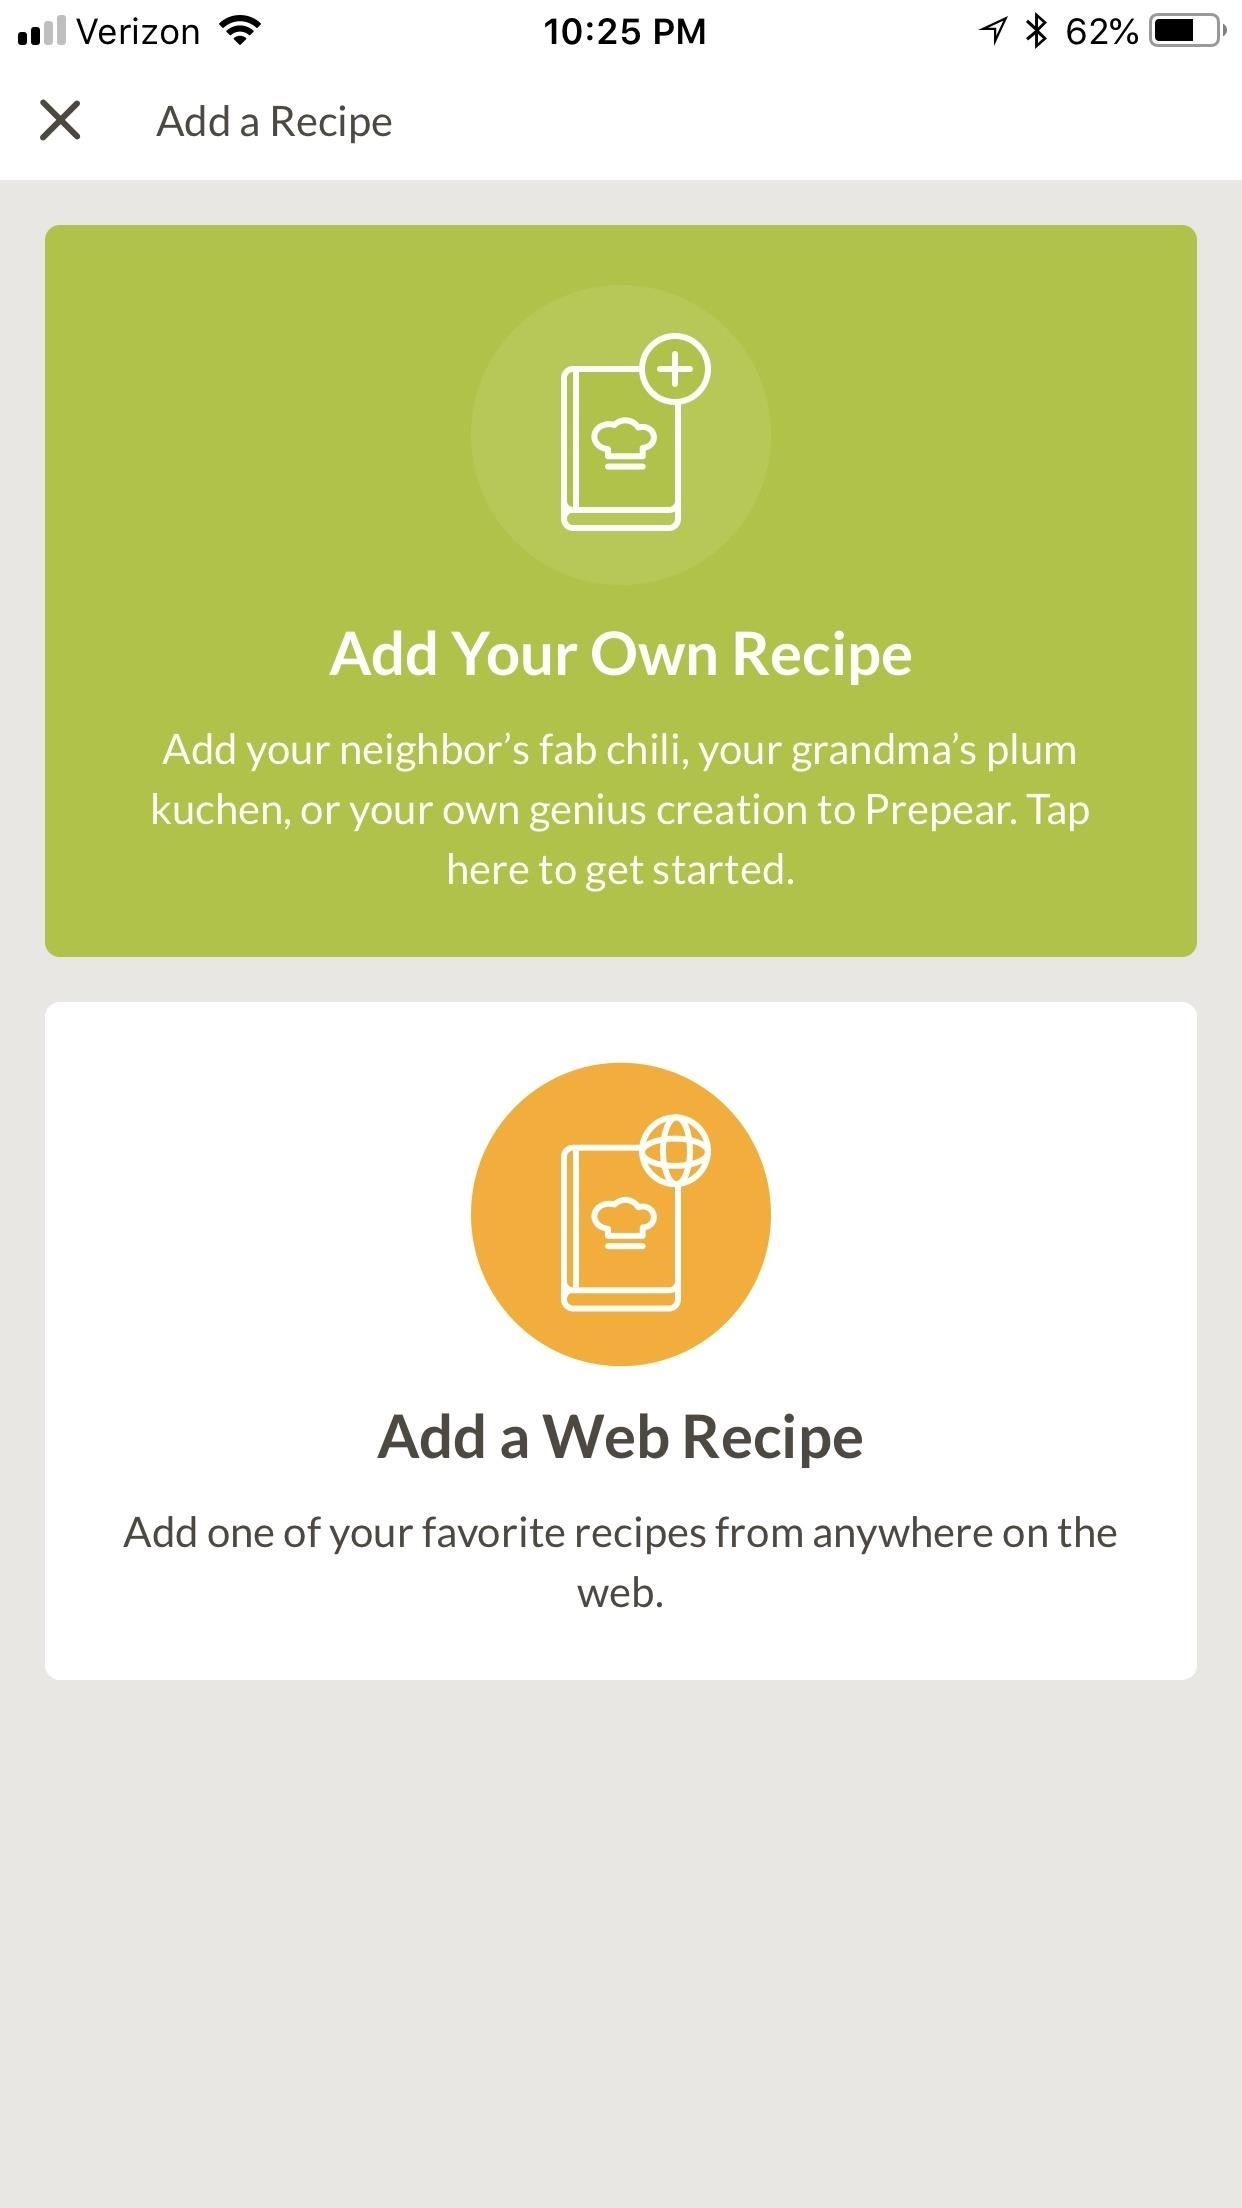 Fhem Icon Küche Catalog Save Recipes From Any Site To Your Smartphone